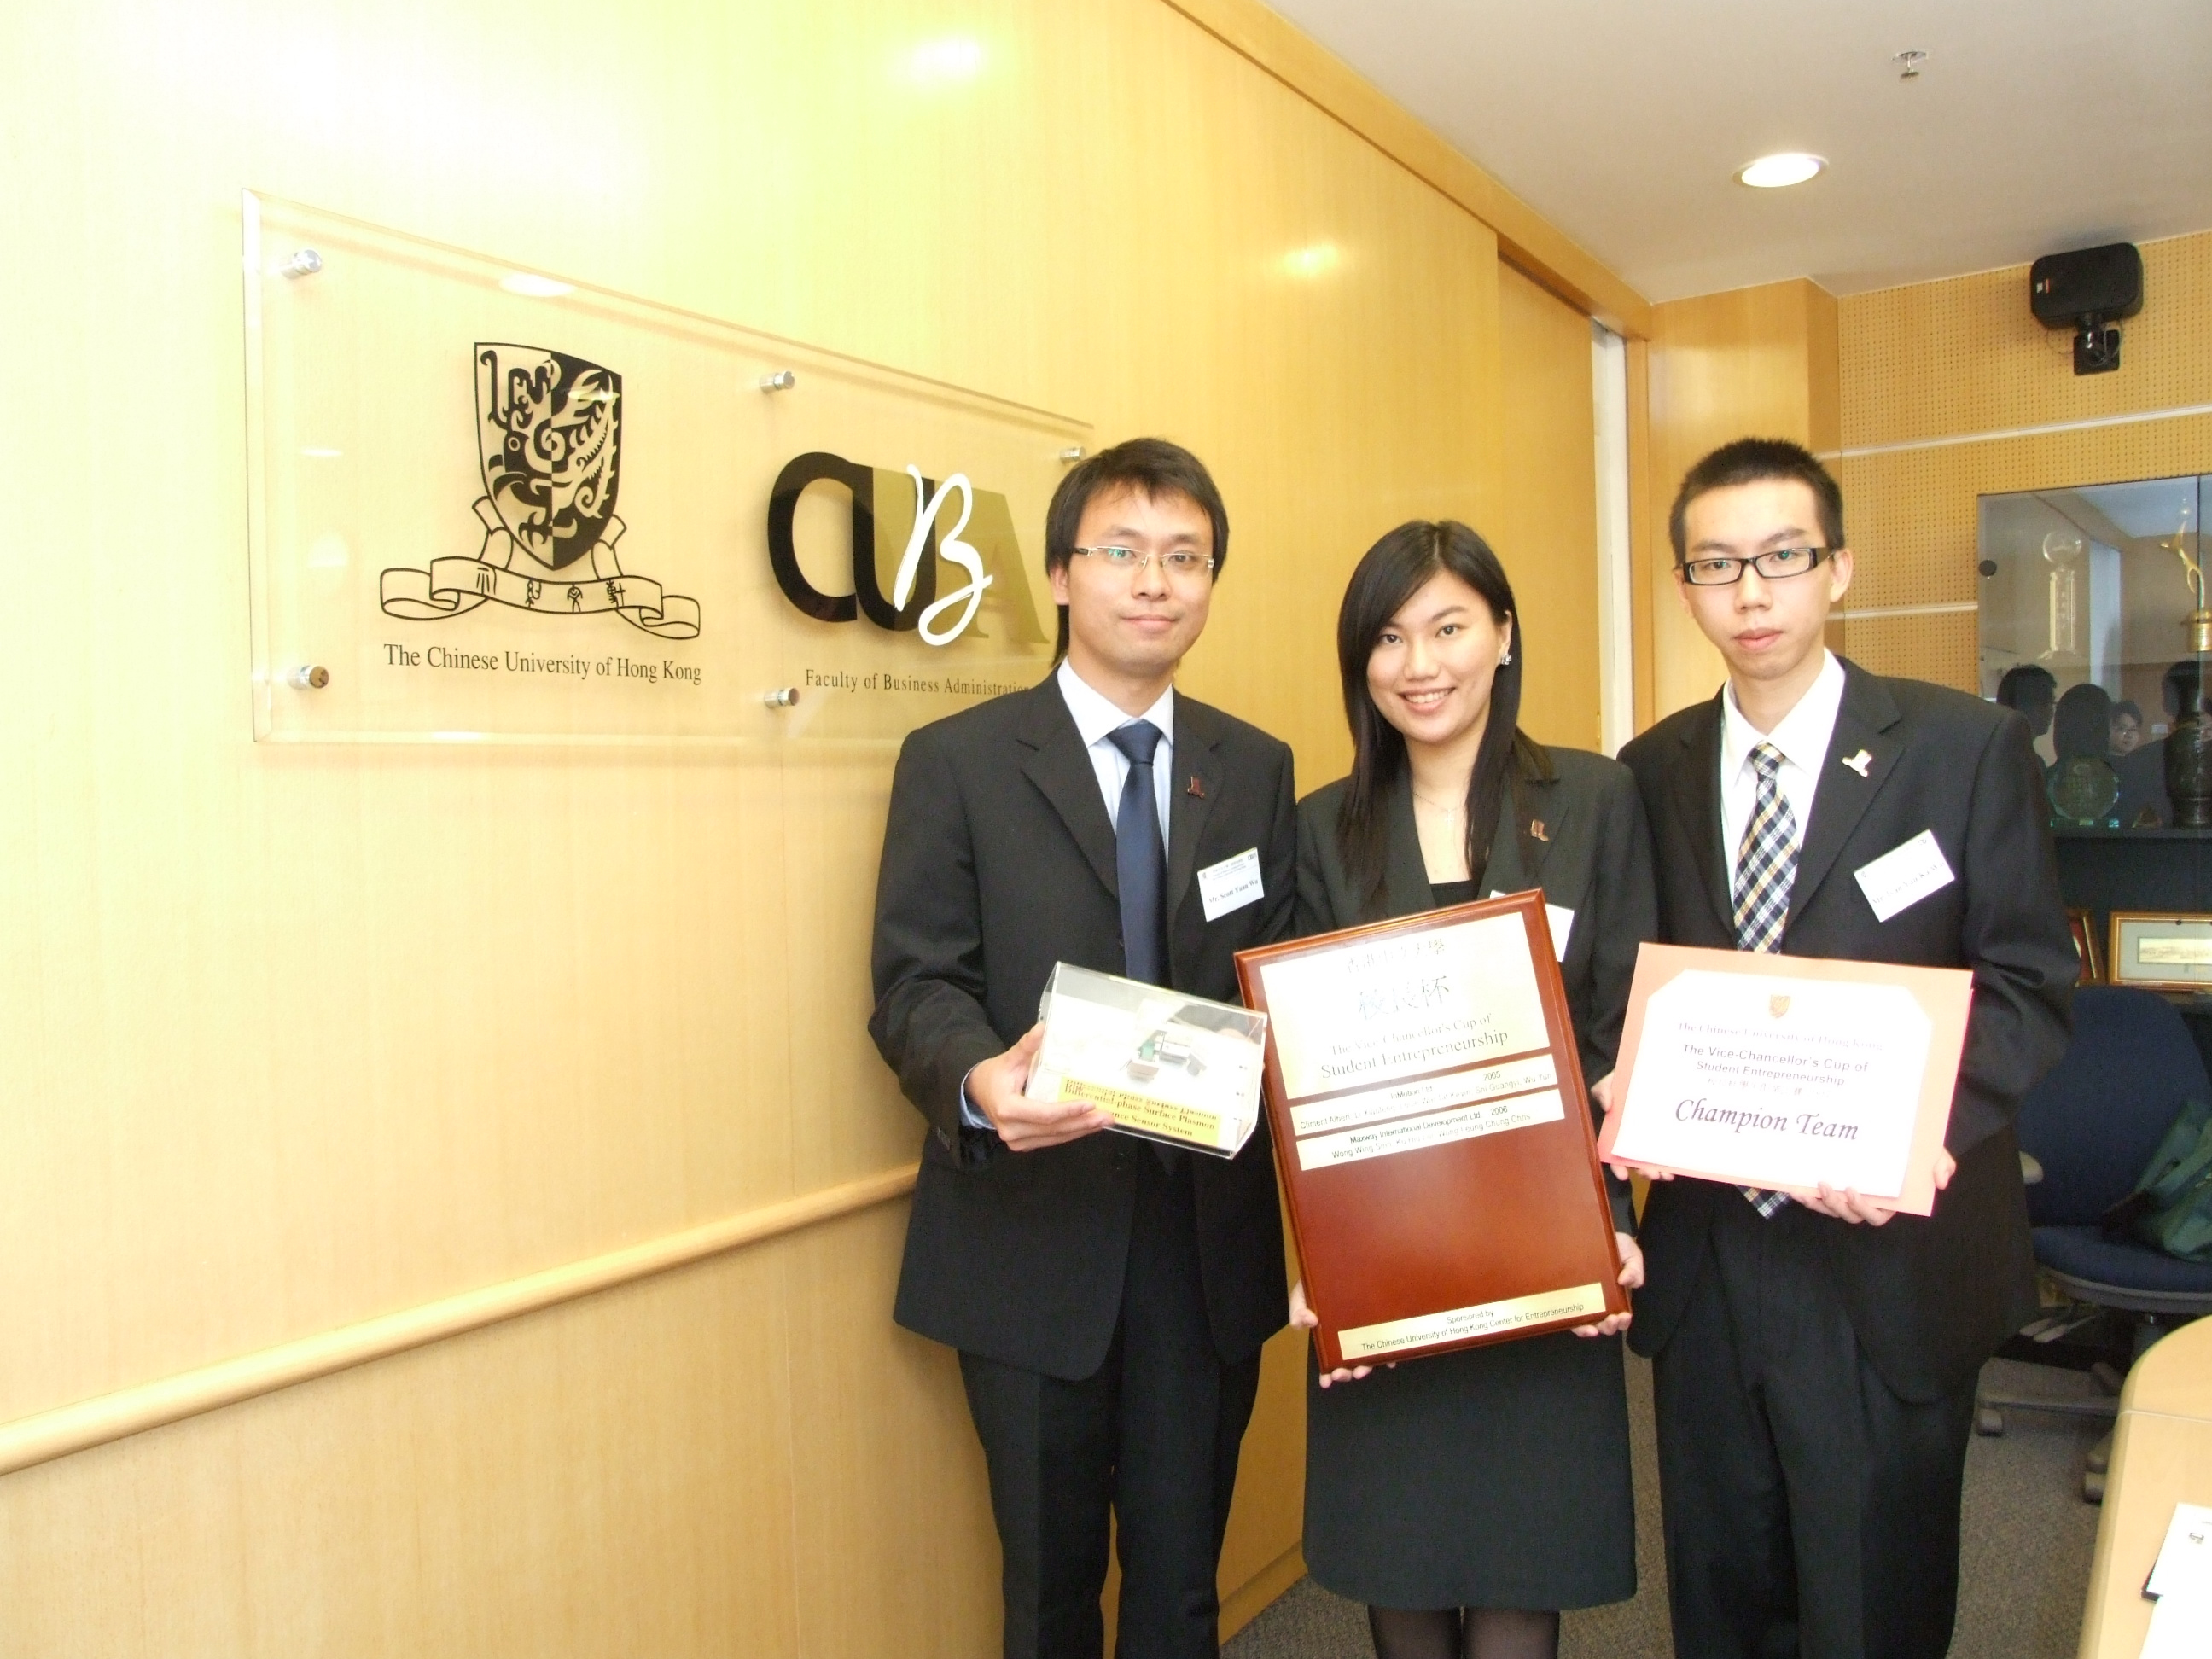 from left - Scott Yuan Wu (PhD student in electrical engineering), Daisy Chan Wing Sze and Ivan Yau Ka Wai (Integrated BBA students)